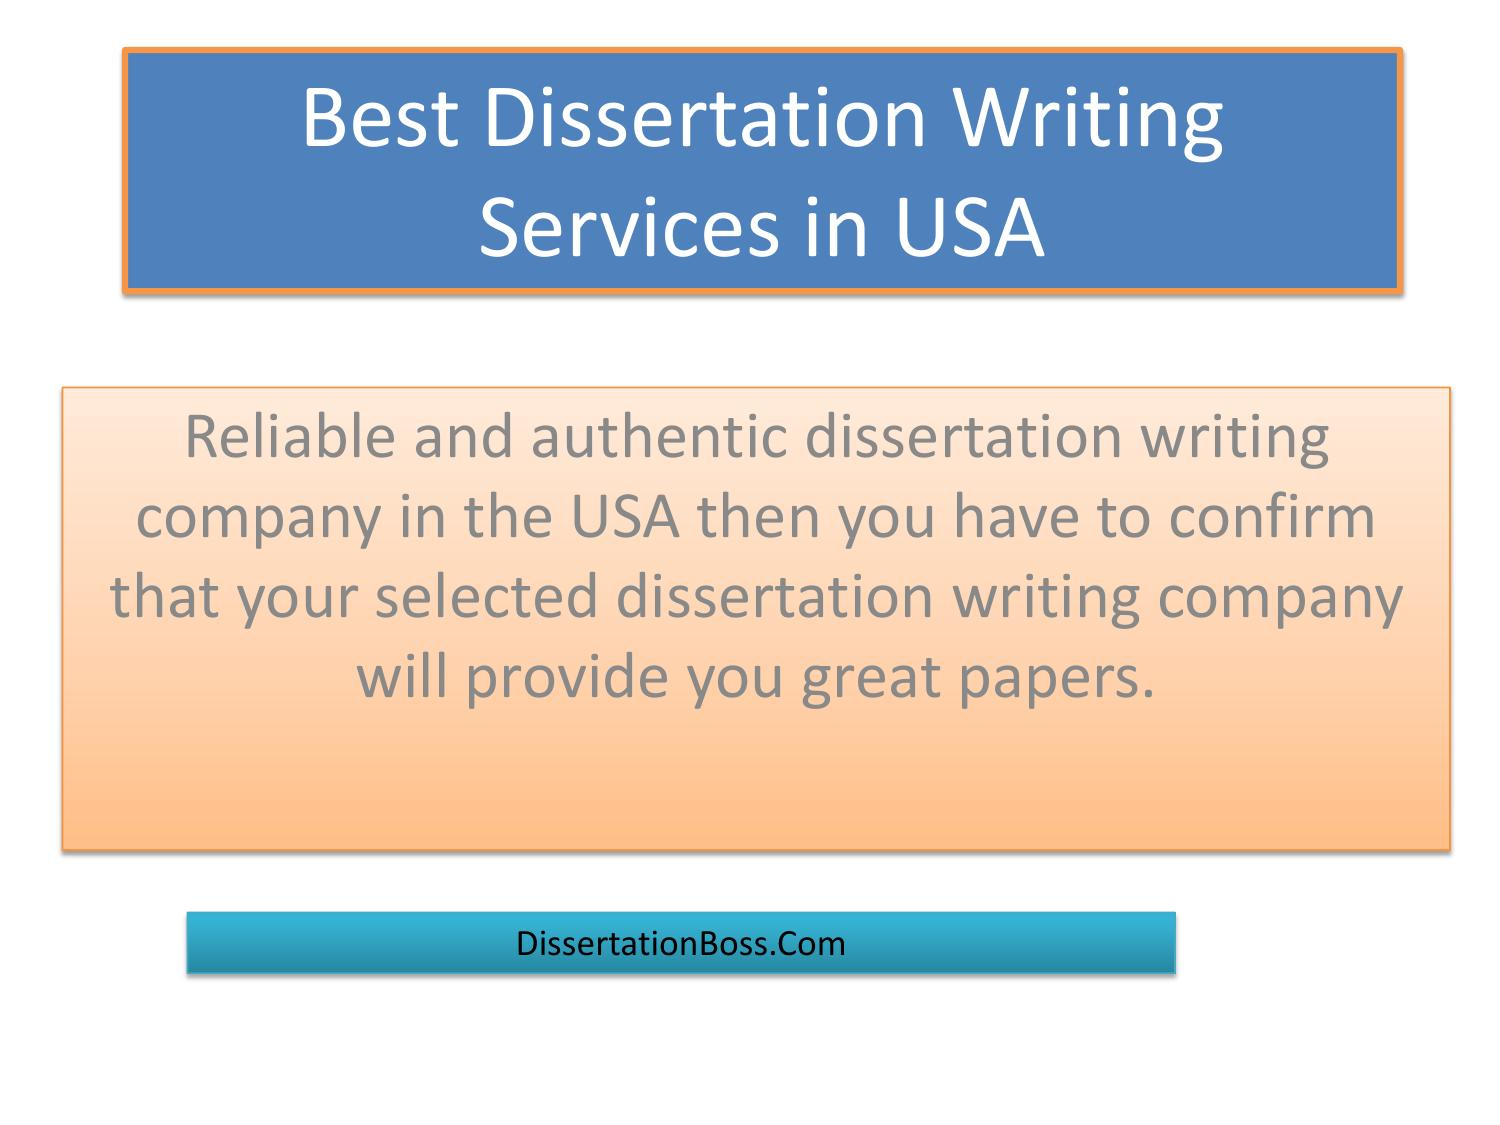 Why use a custom dissertation writing service?